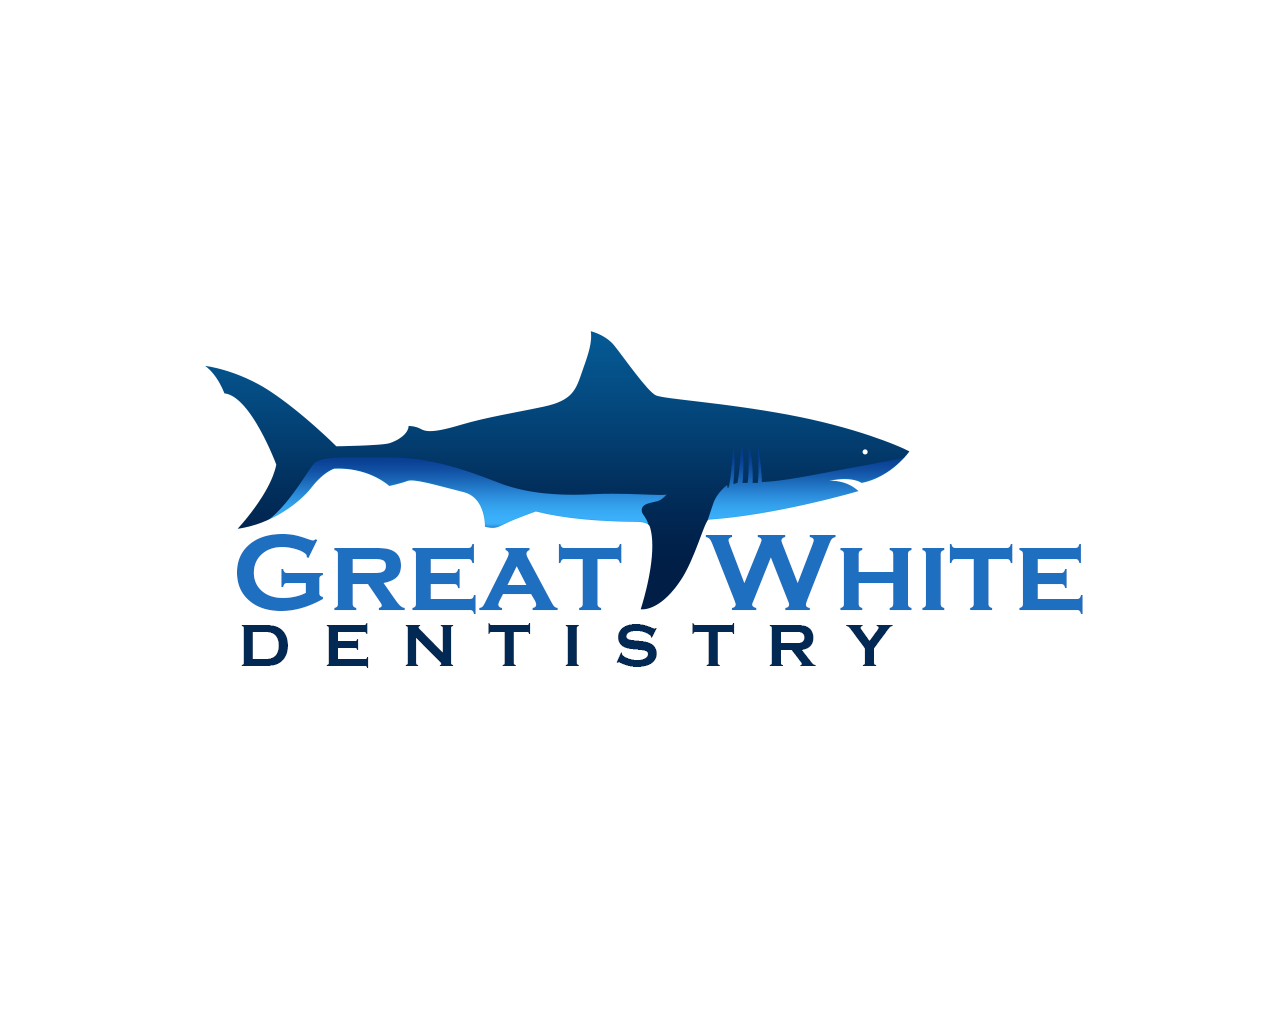 Logo Design by philipprince - Entry No. 132 in the Logo Design Contest Logo Design for Great White Dentistry.